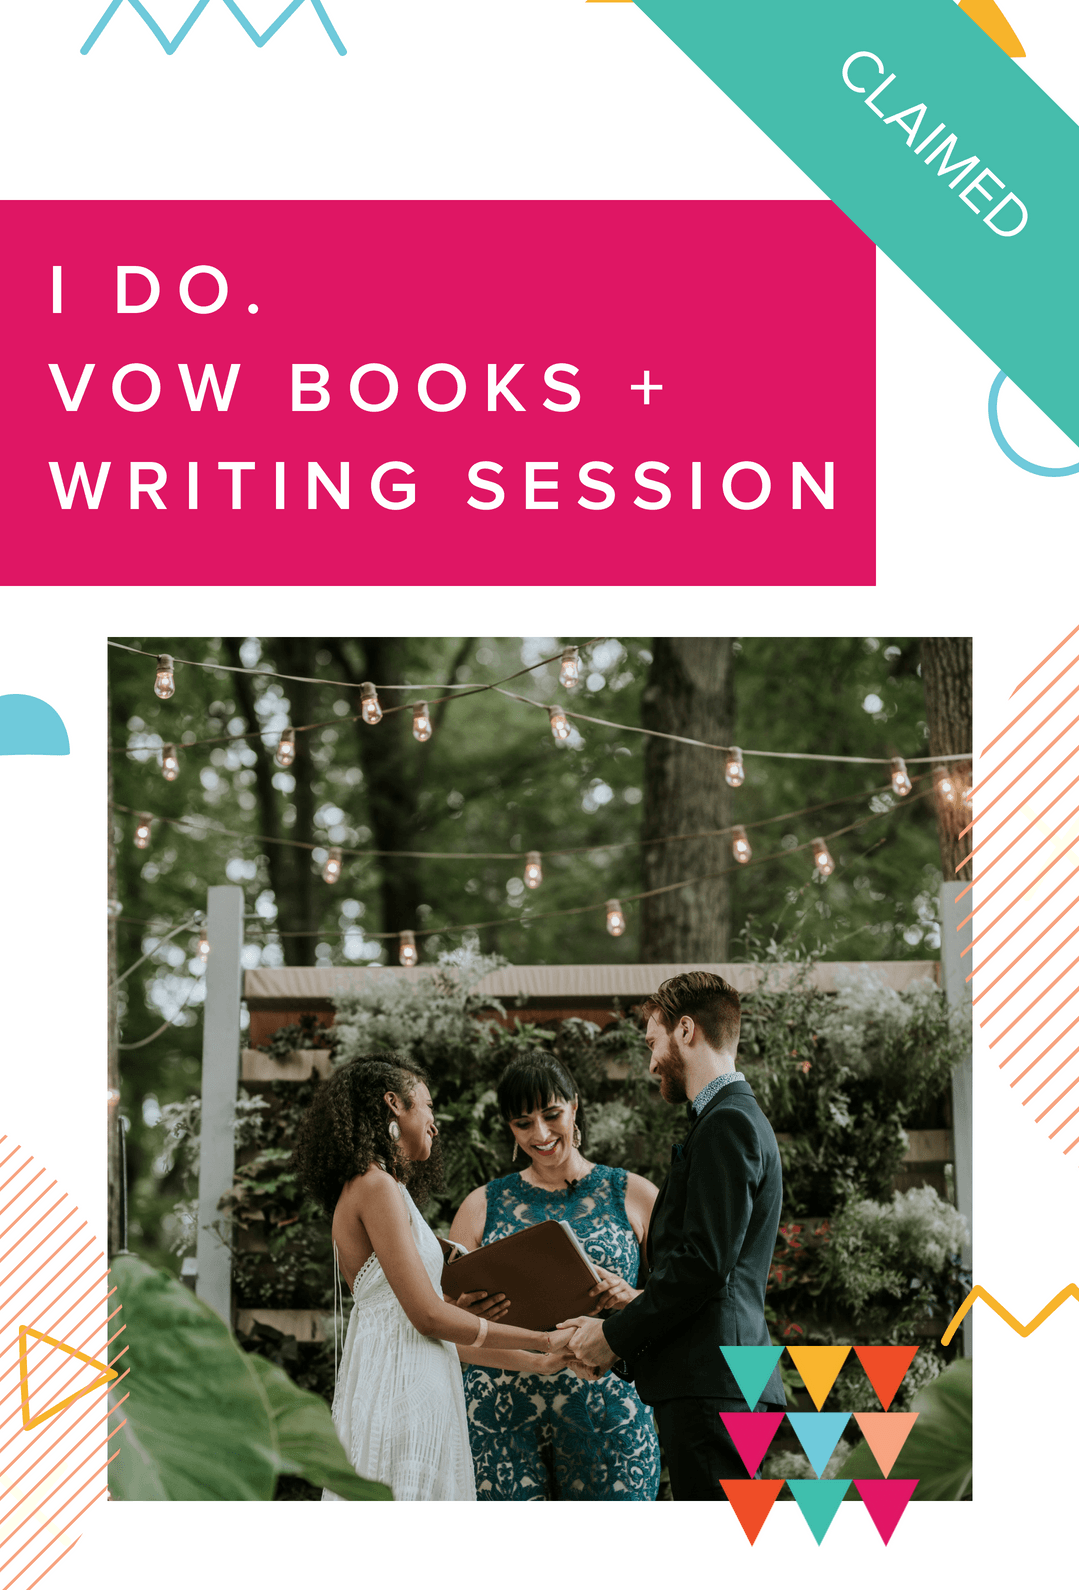 Spring into Wedding Planning Vow Books and Vow Writing Session Alisa Tongg claimed